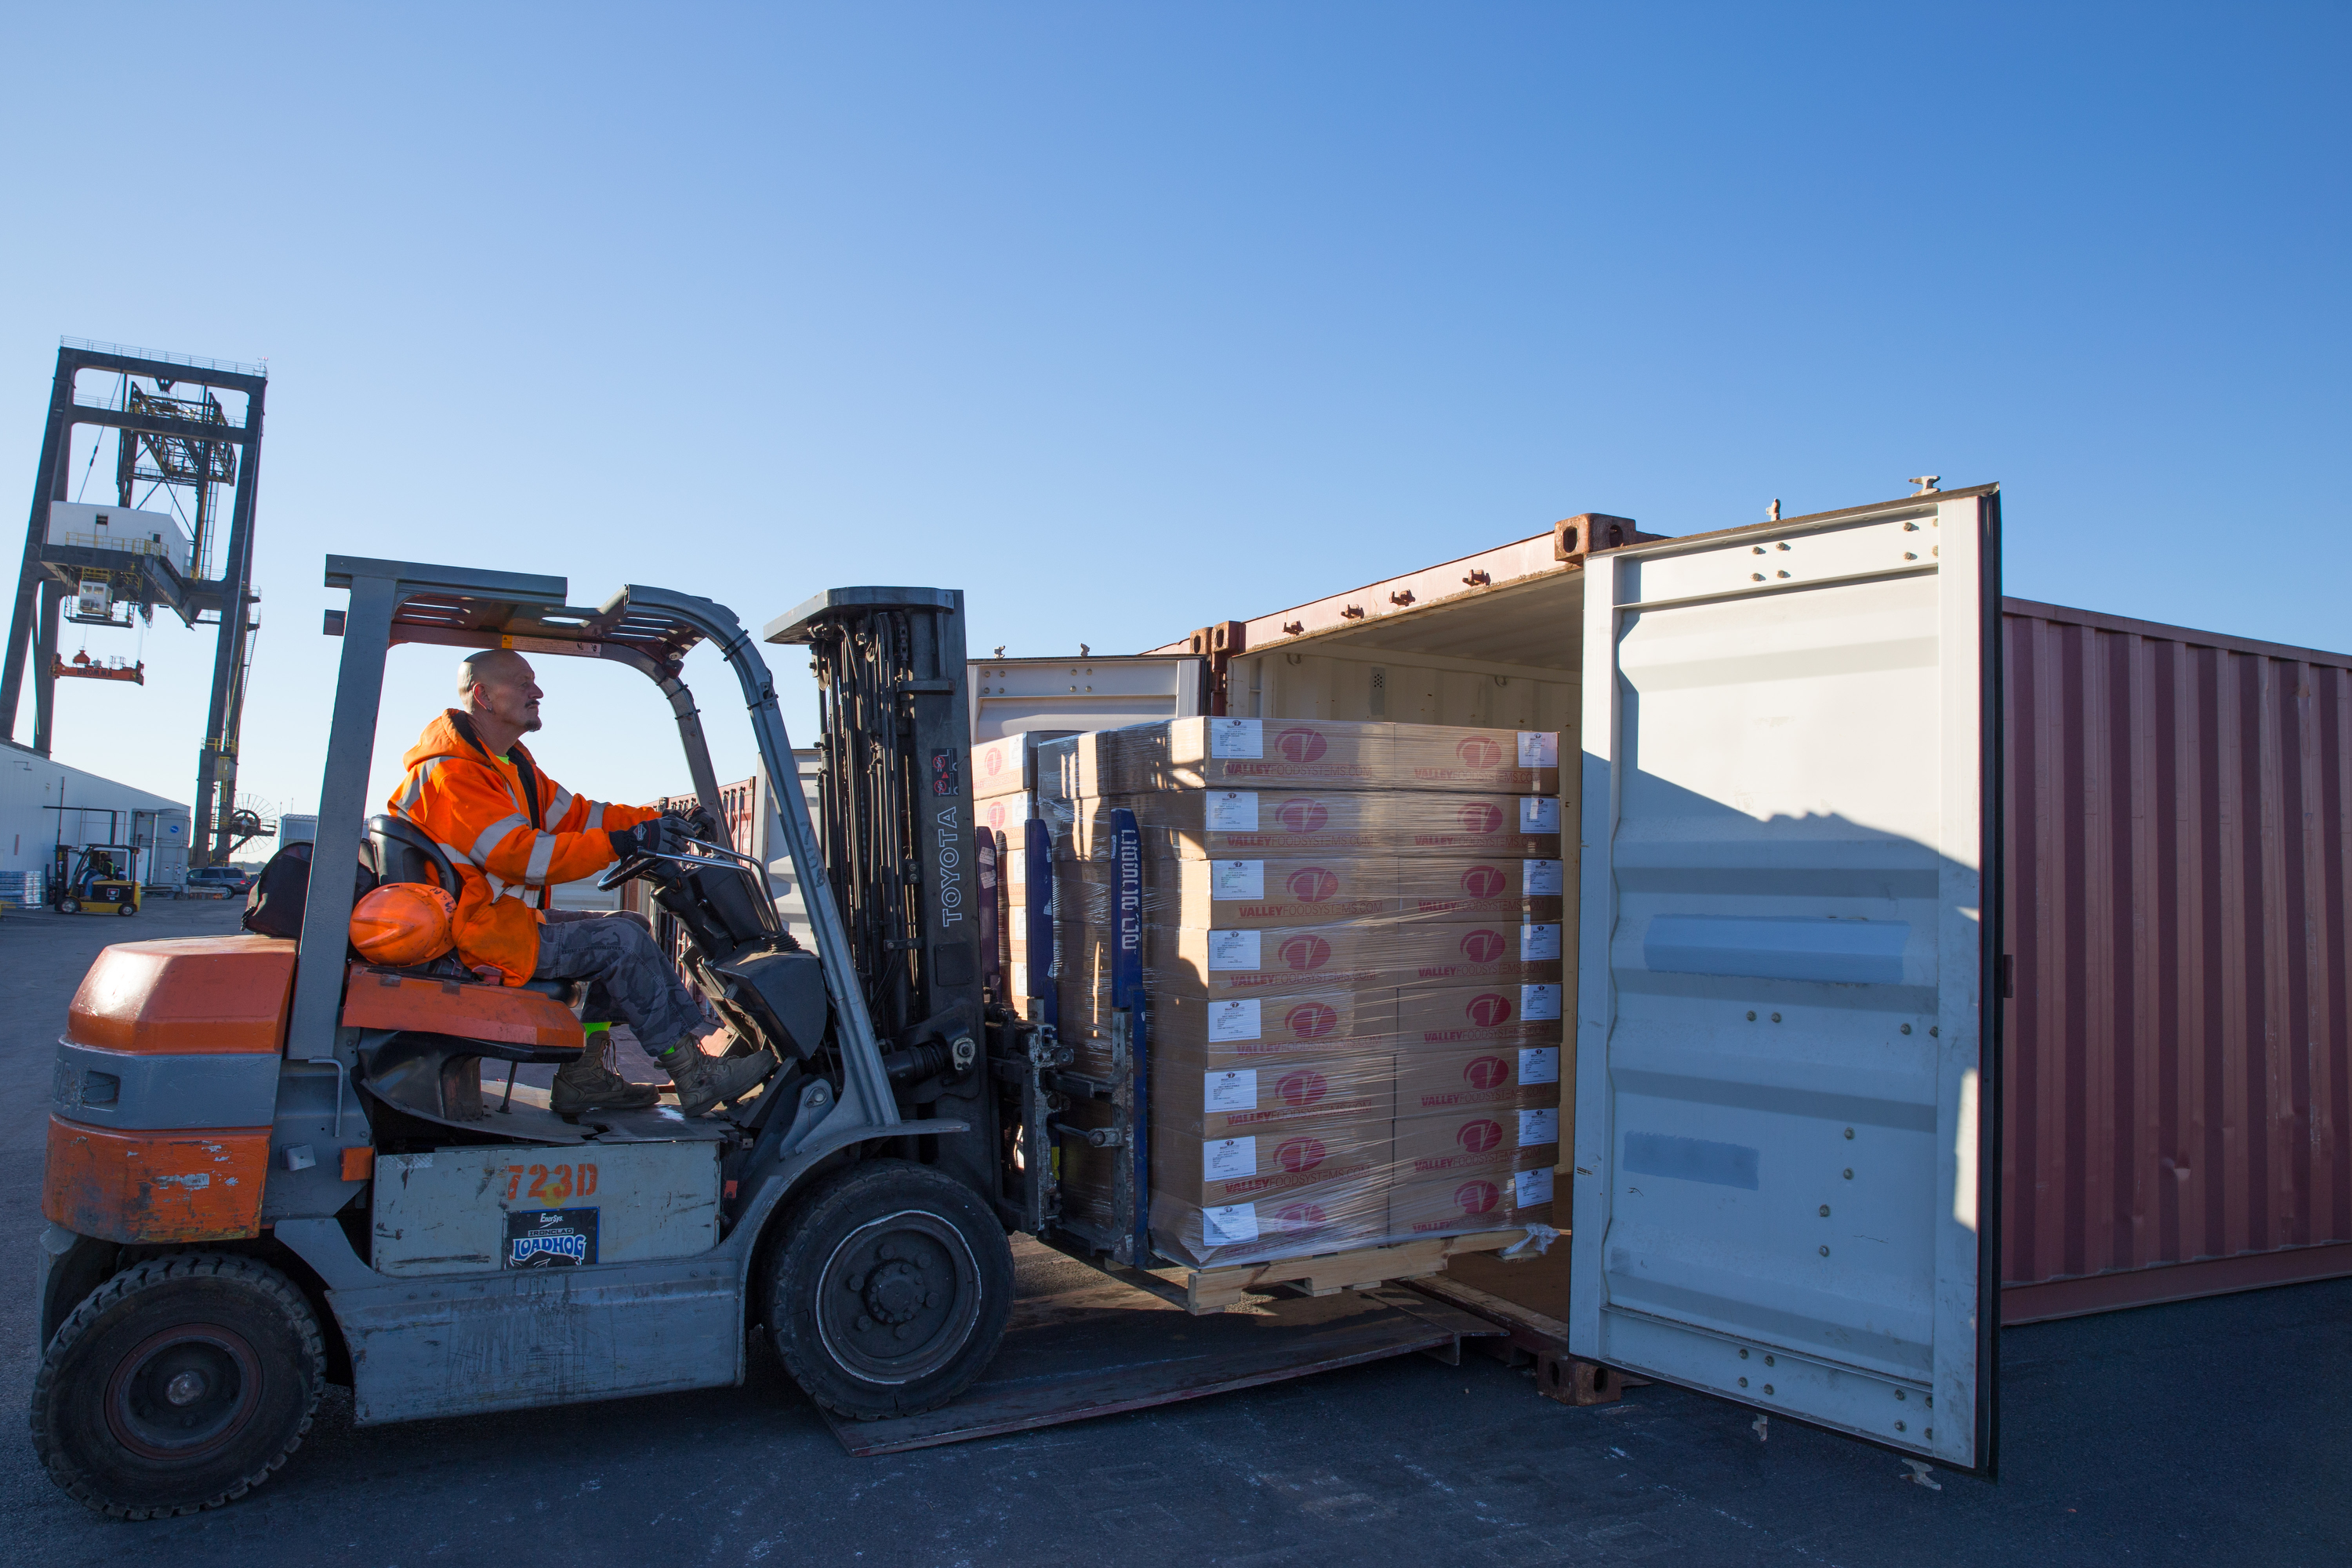 Steven Trautz loads supplies into a shipping container headed for Puerto Rico from Penn Terminals. JESSICA GRIFFIN / Staff Photographer